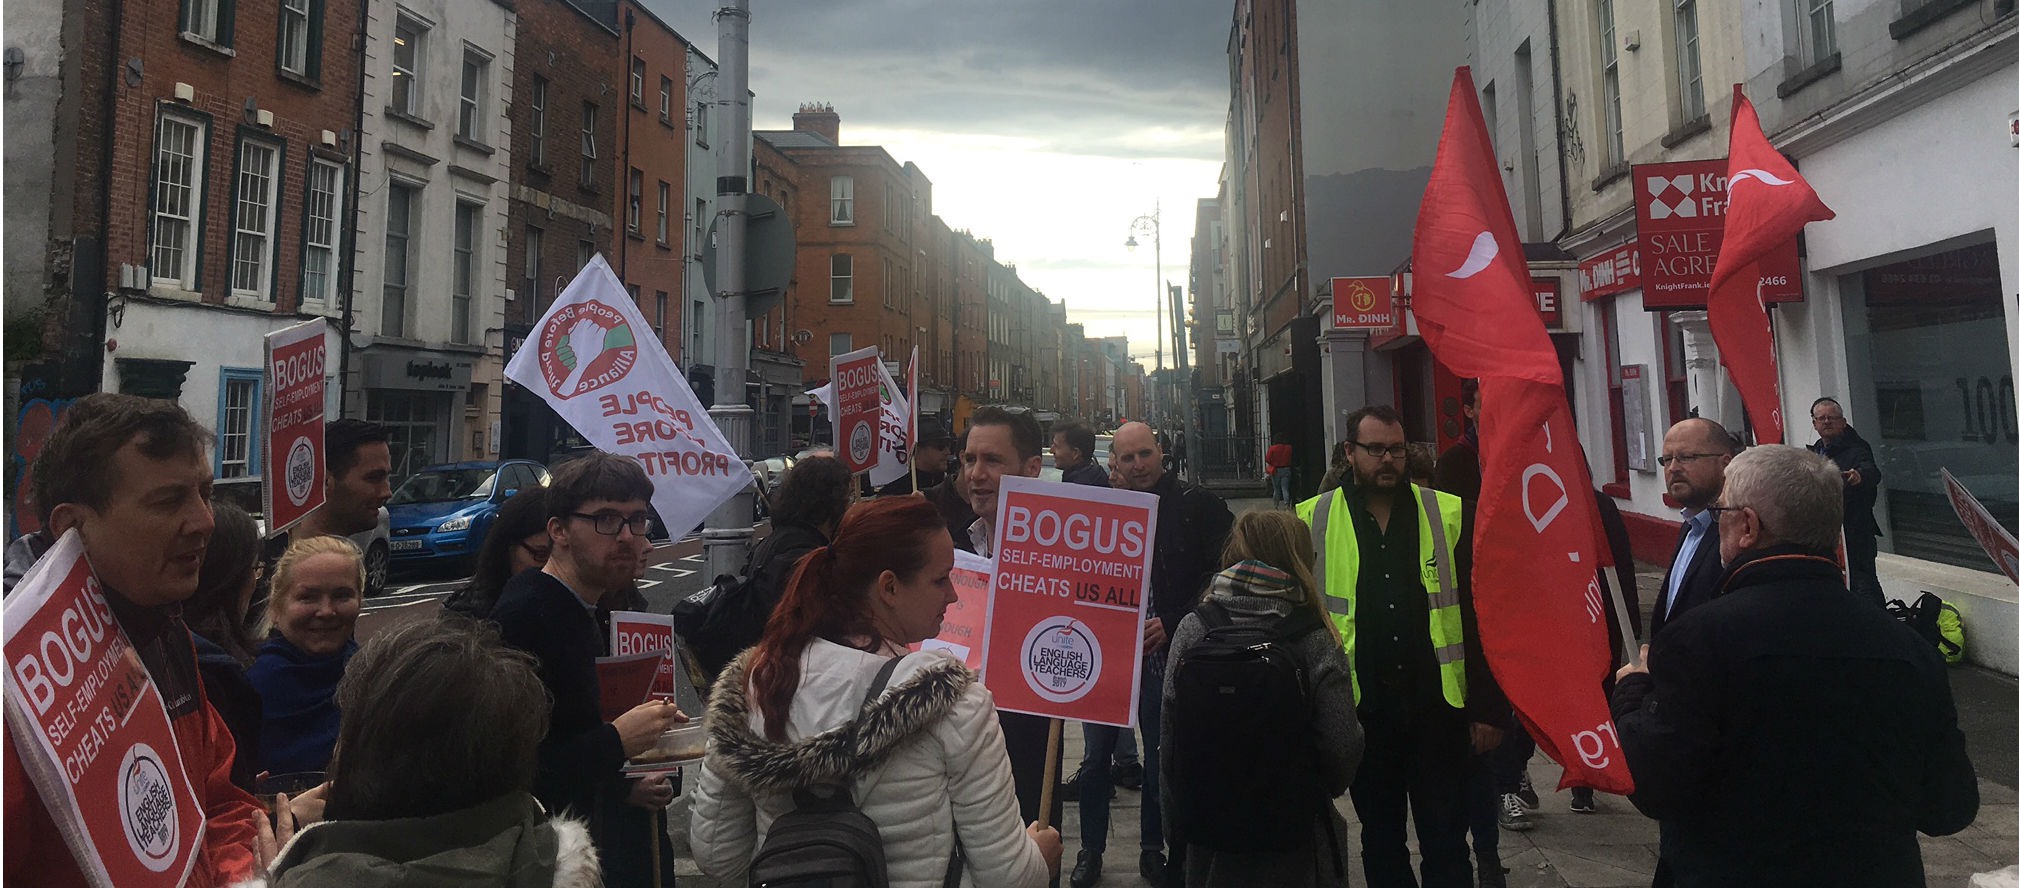 English Language Teachers Protest In Dublin